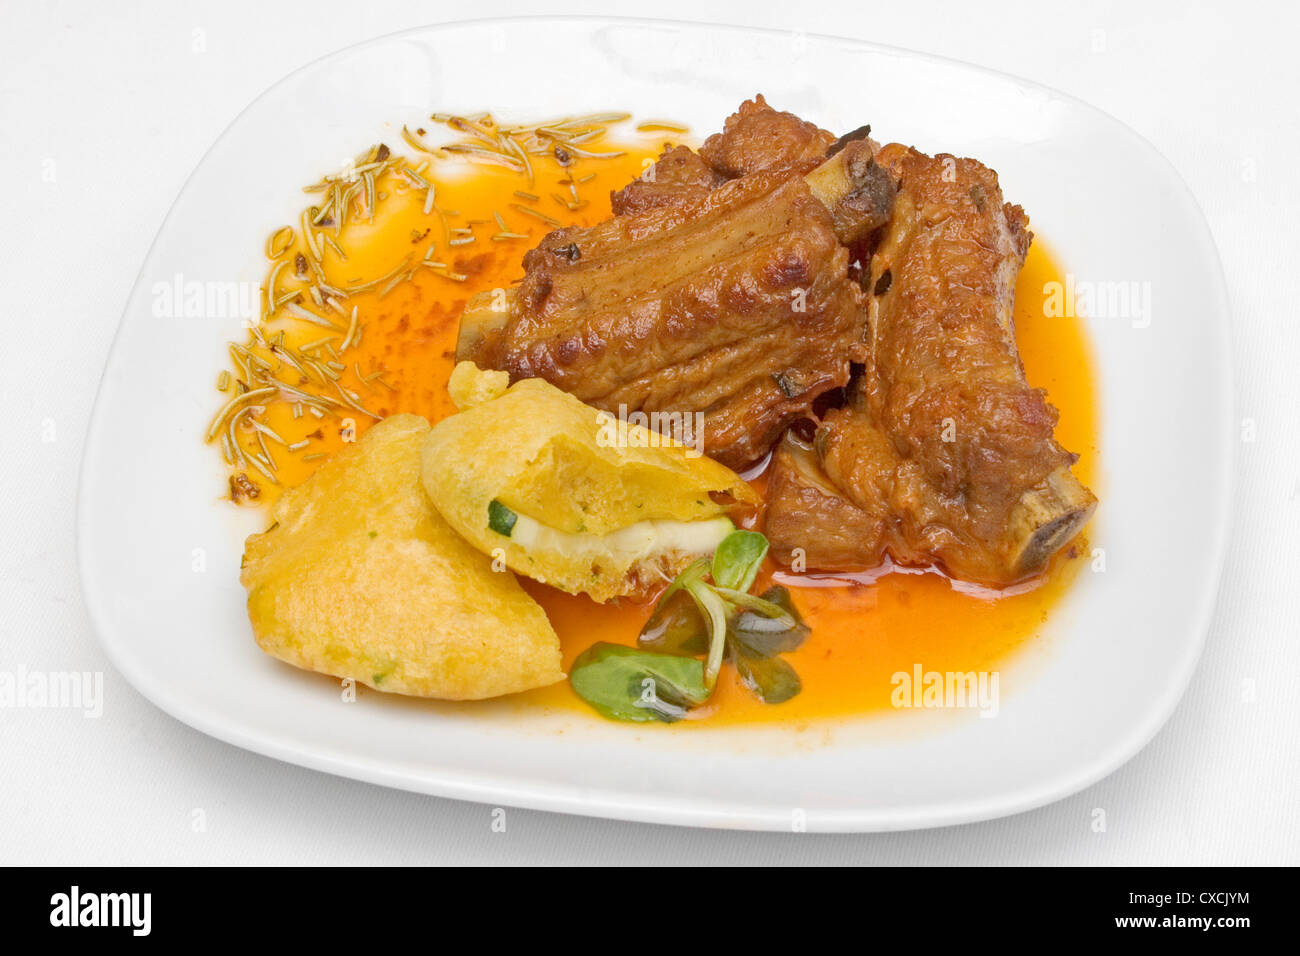 Tapa of pork ribs marinated - Stock Image